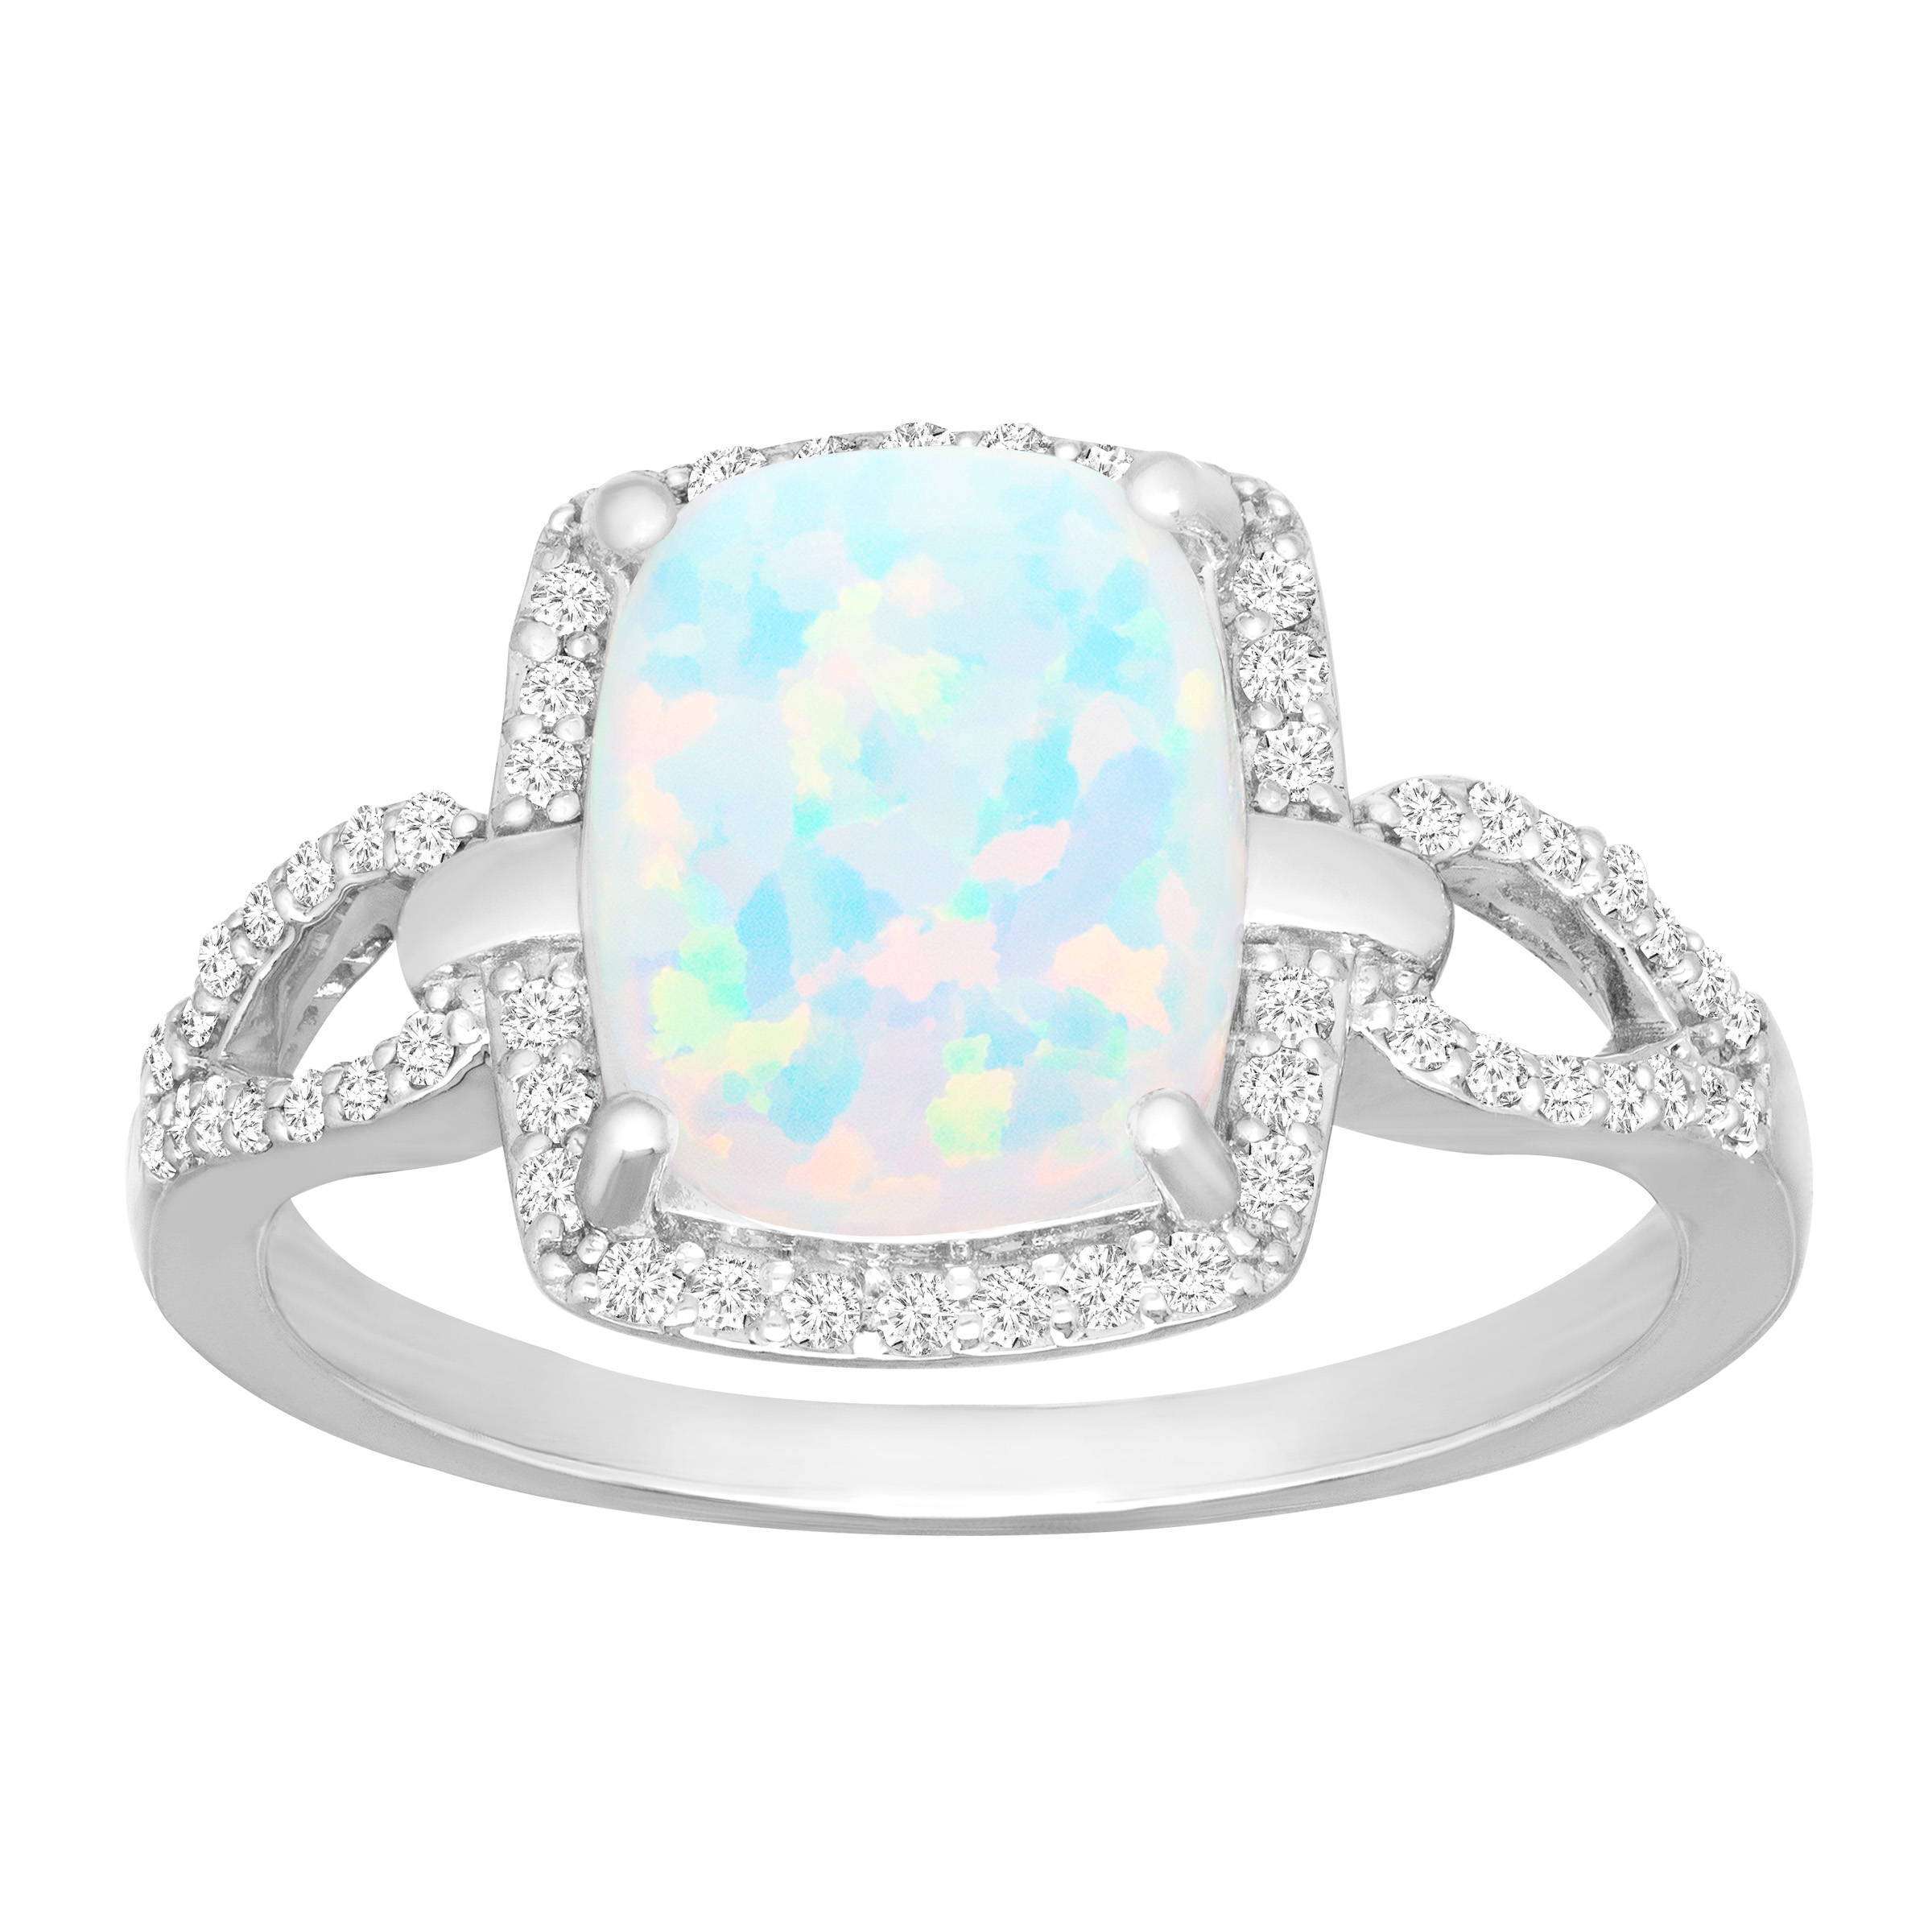 3 4 ct Created Opal & 1 4 ct Diamond Ring in Sterling Silver by Richline Group